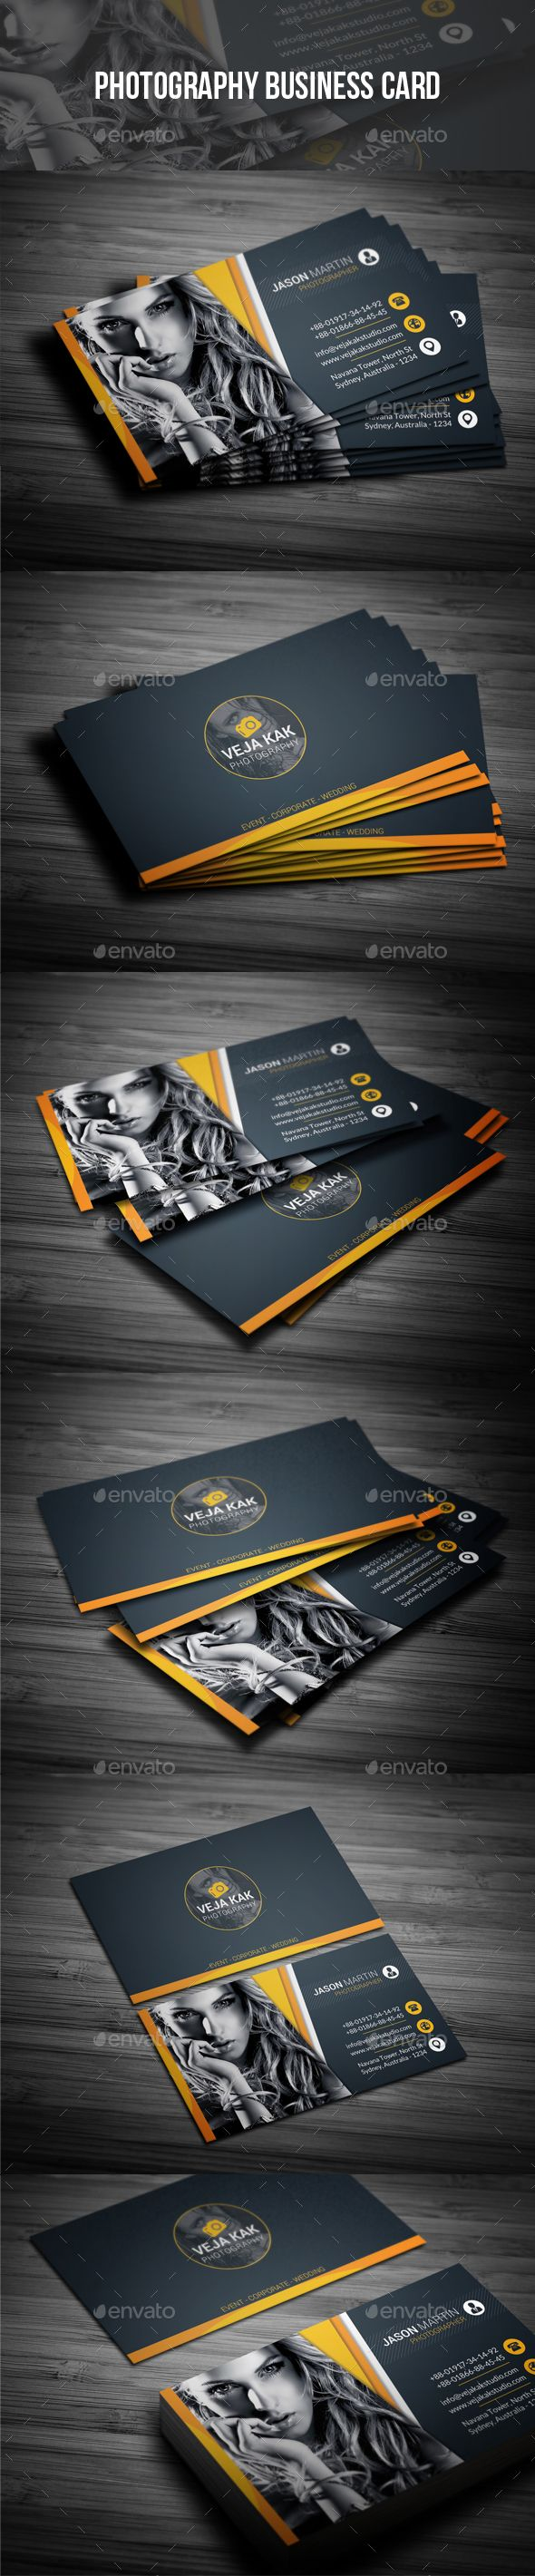 Best 25+ Business card maker ideas on Pinterest | Art business ...